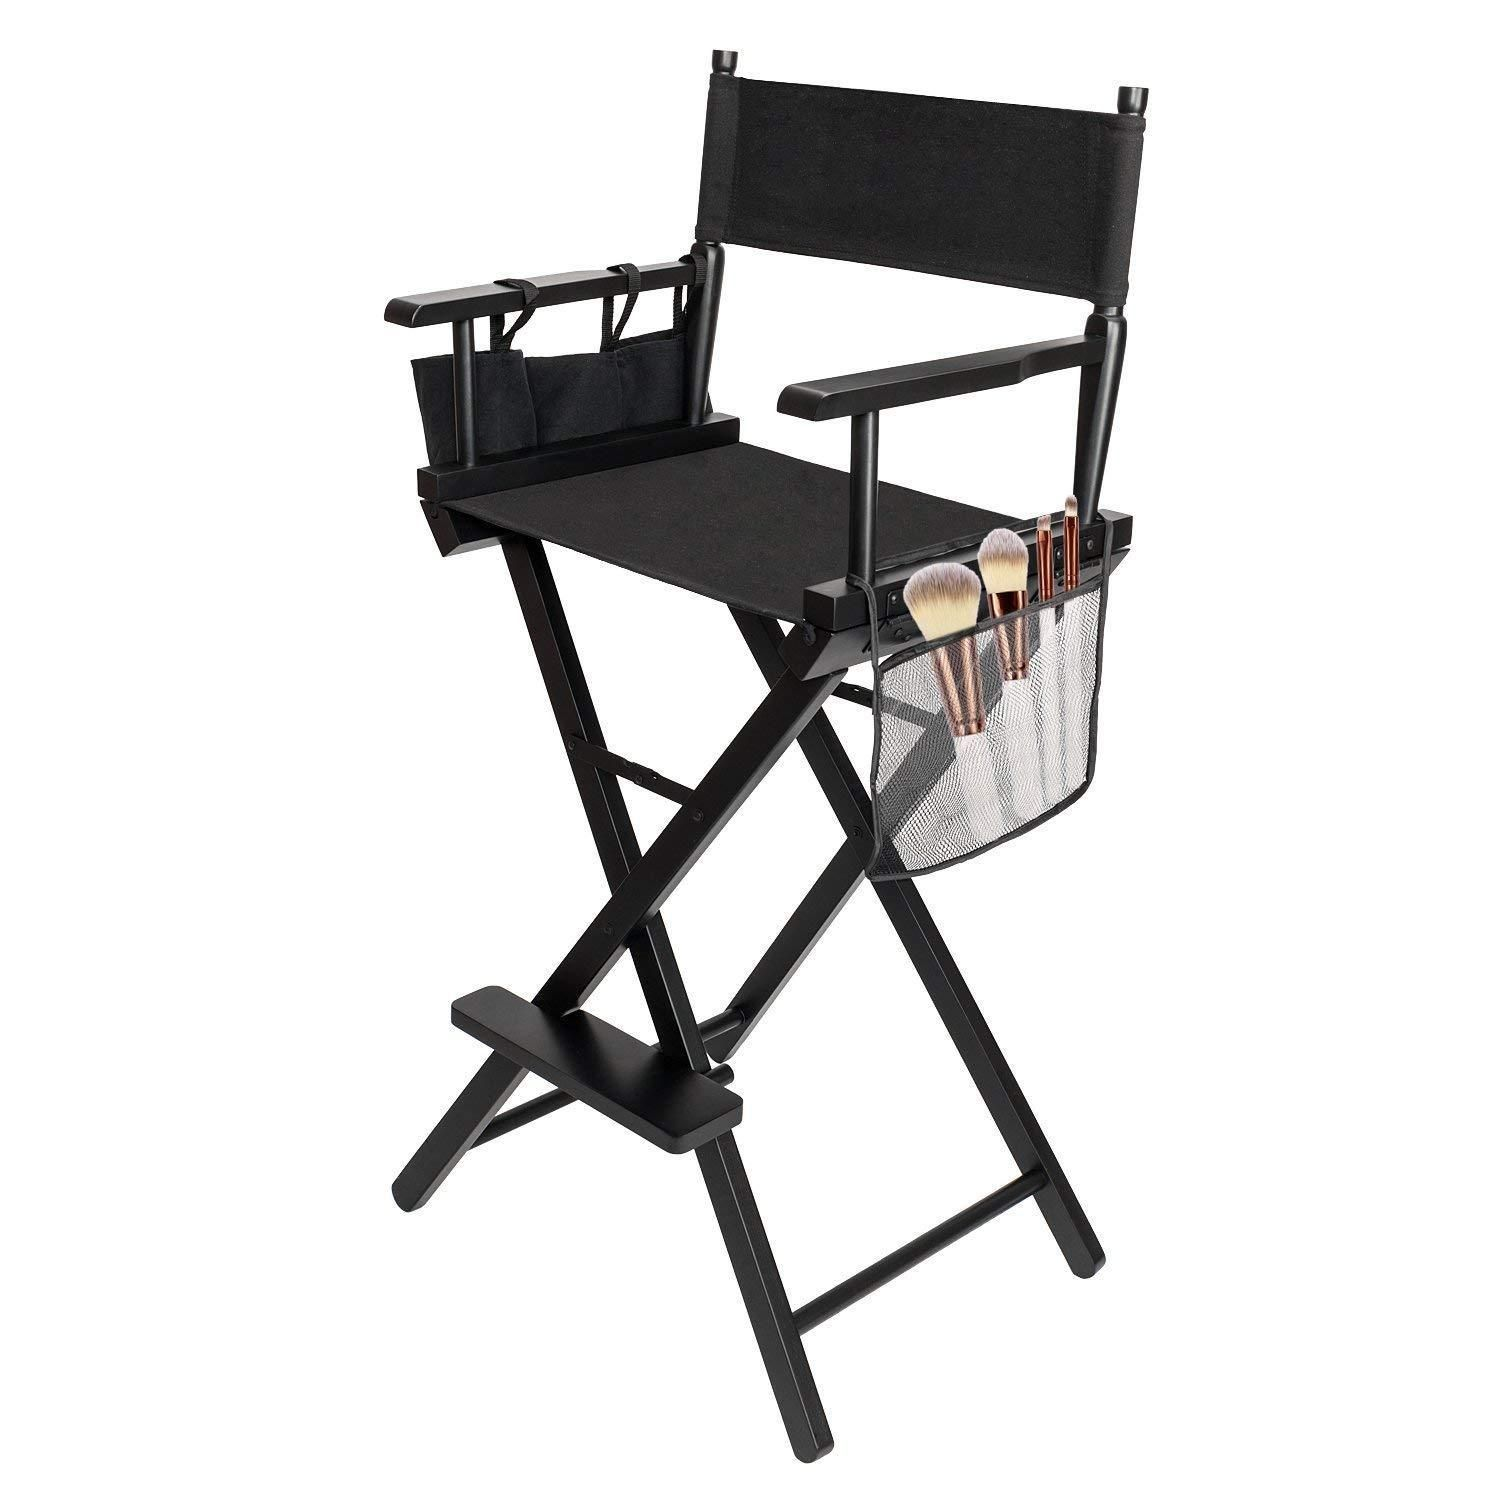 Details About Hot Directors Chair 30 Inch Canvas Tall Seat Black